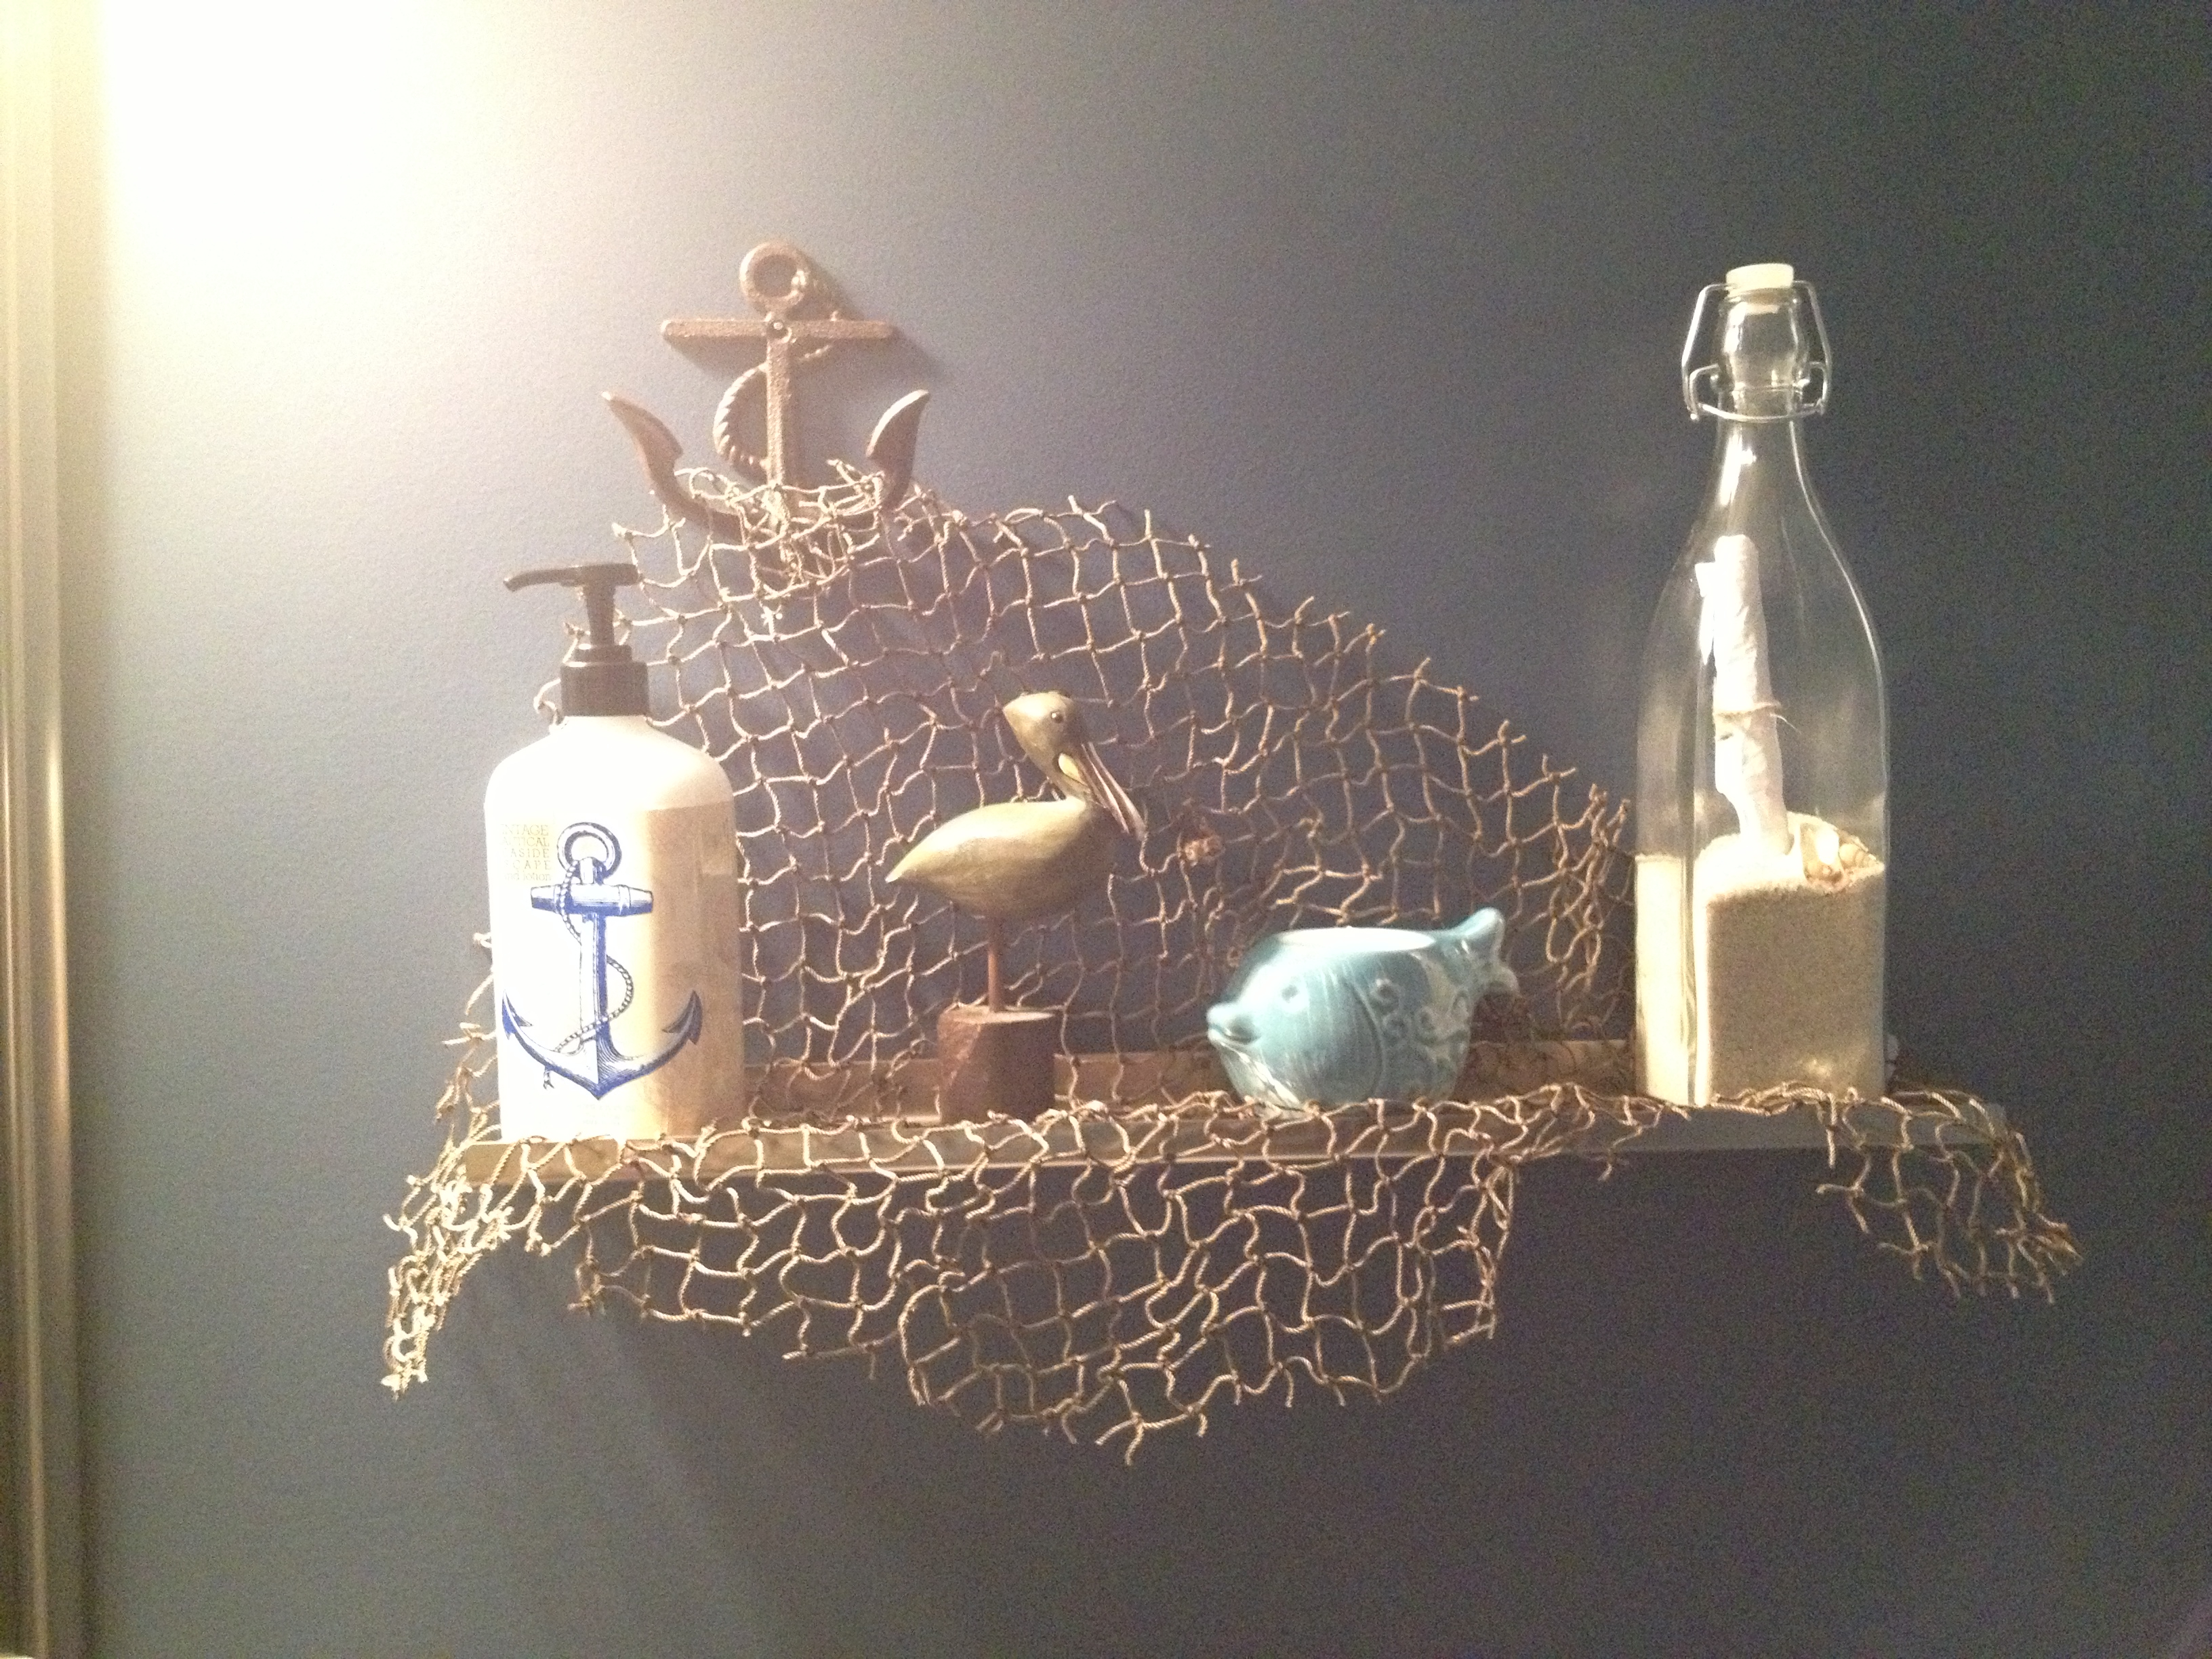 nautical bathroom decor cute shelf decor for a nautical bathroom! make sure you put a real LESWWSX